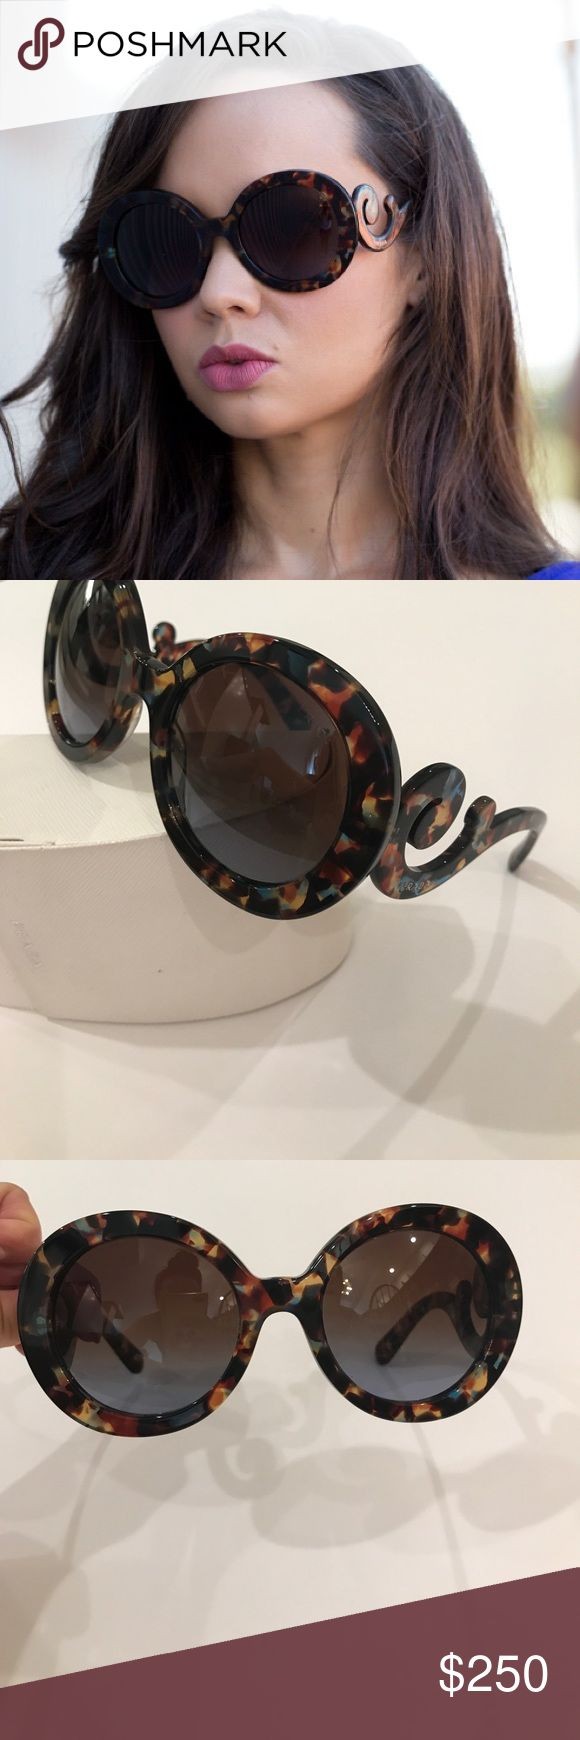 Prada Baroque tortoiseshell sunglasses authentic Authentic Prada baroque sunglasses in a beautiful tortoiseshell! Only worn twice for photo shoots. Includes case. Sunglasses in perfect condition. Case looks slightly worn, but still in good condition. Prada Accessories Sunglasses